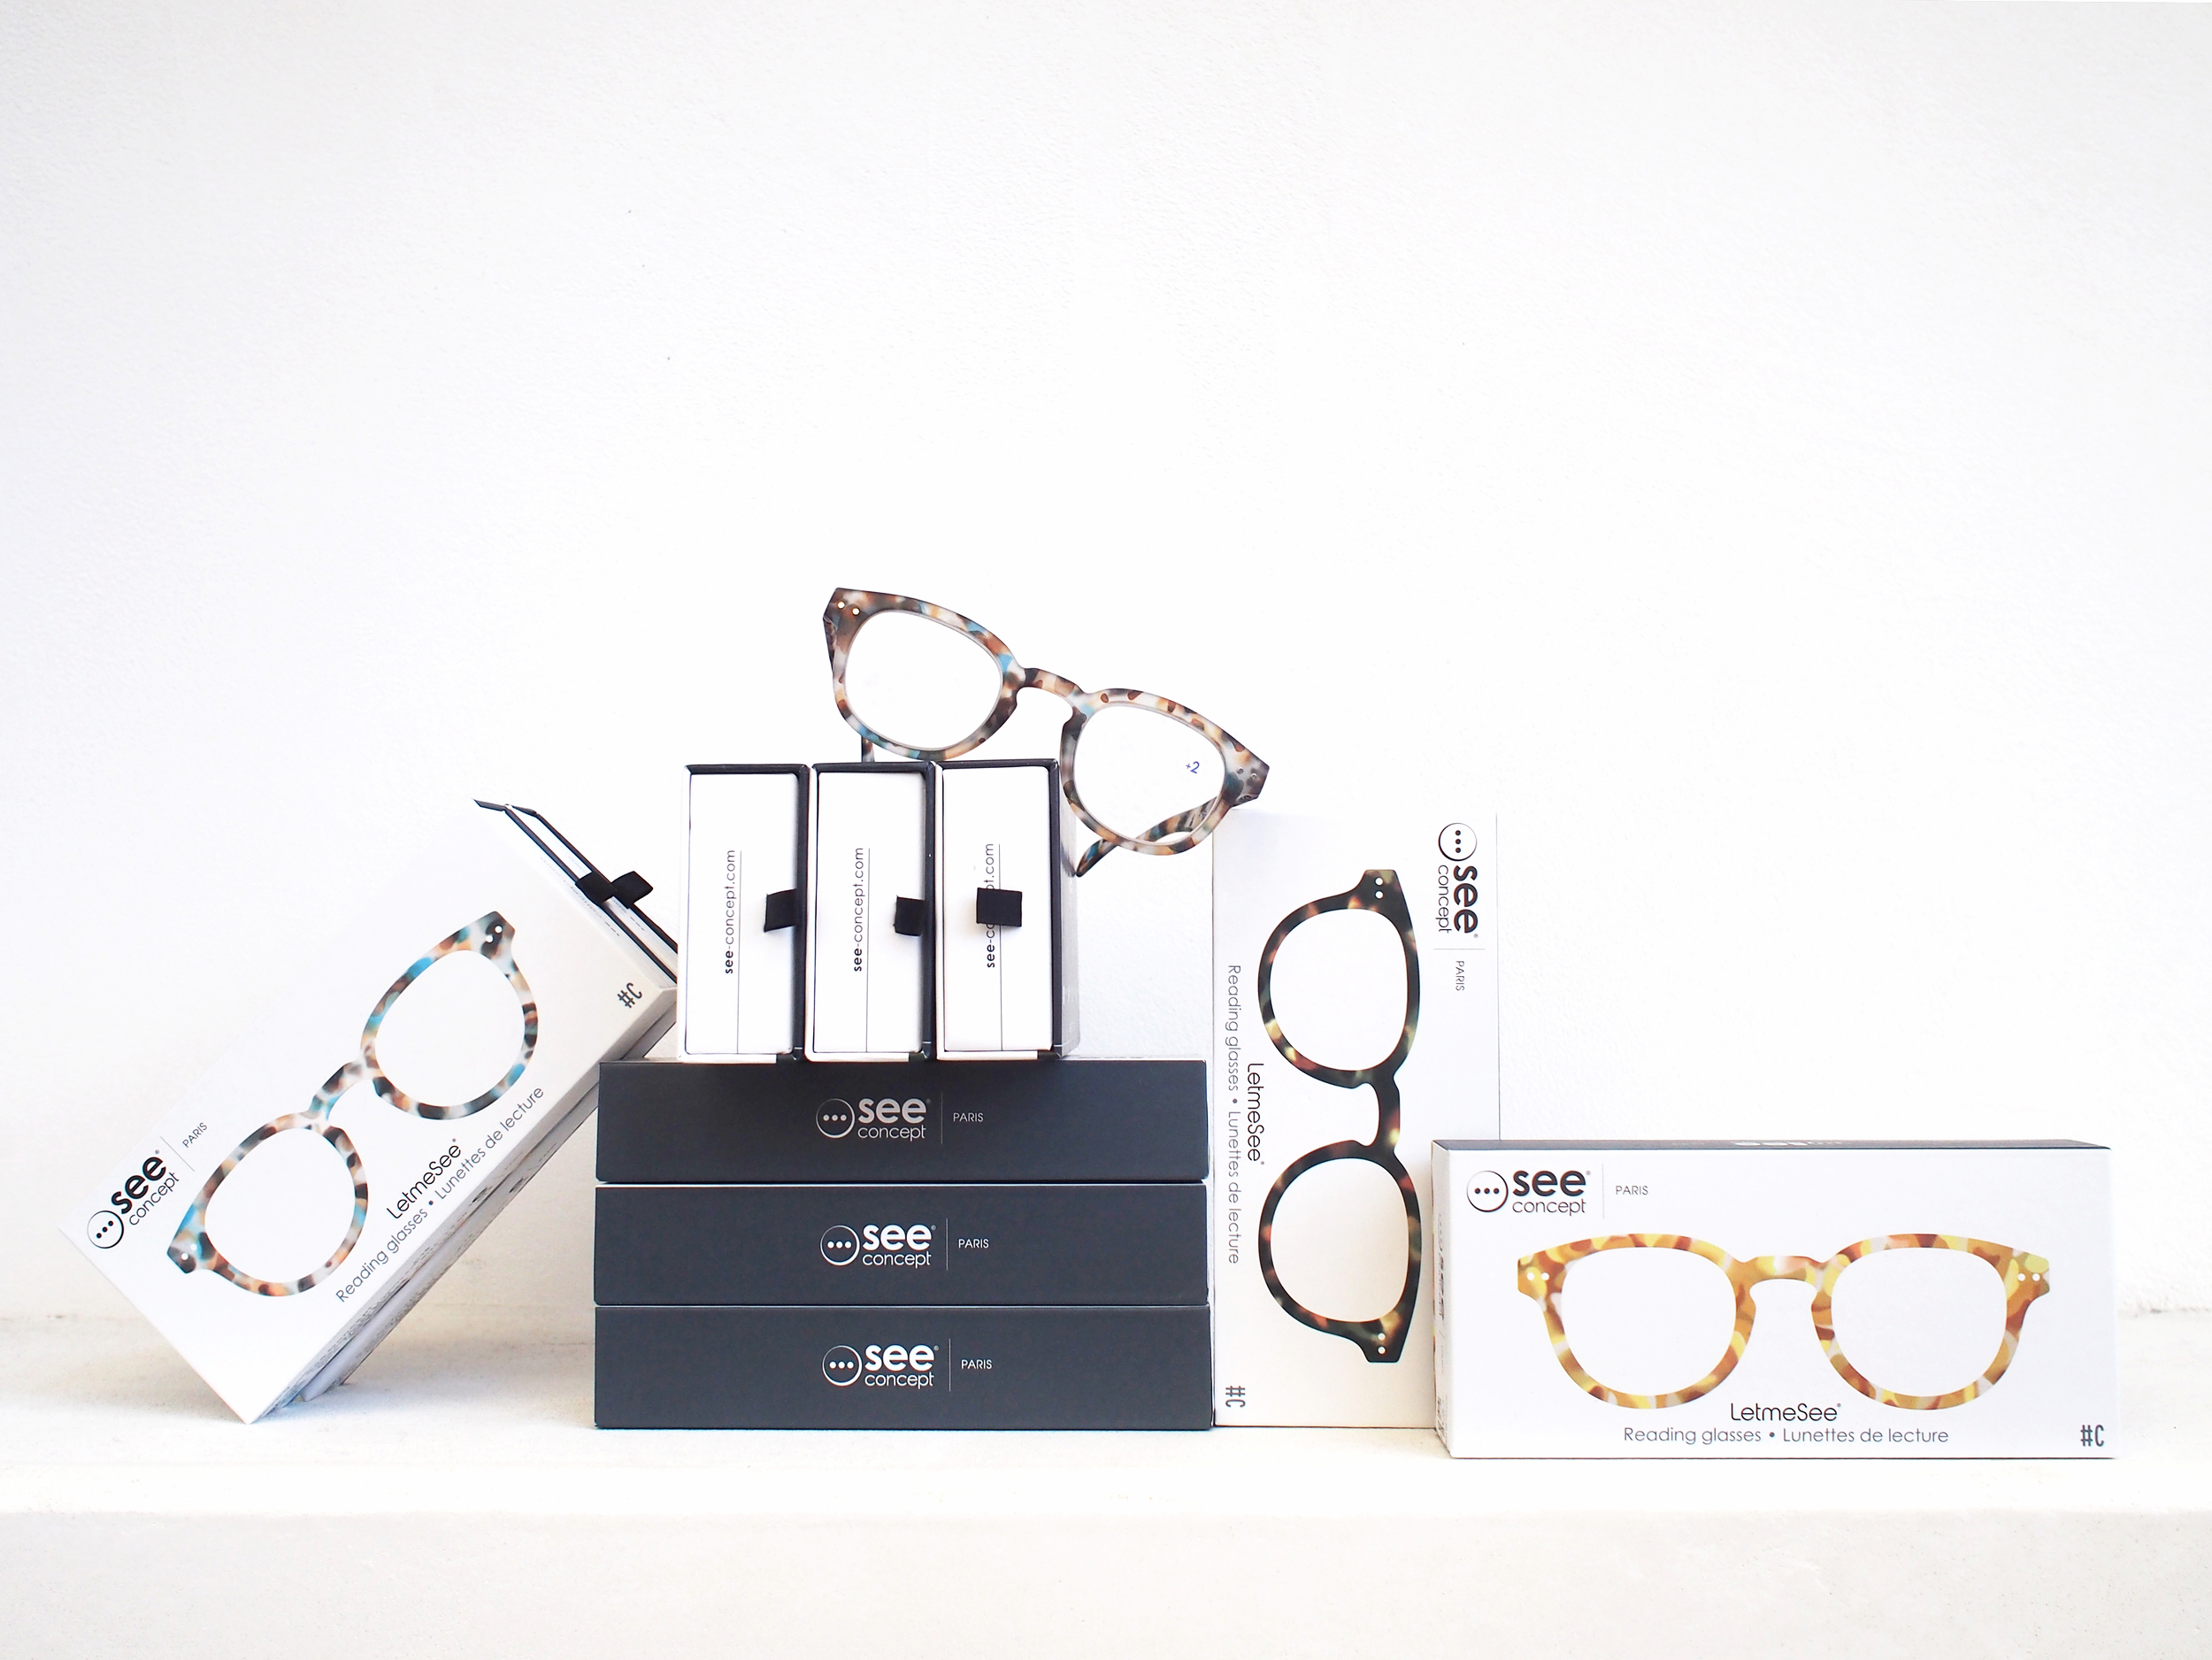 See Concept readers in tortoise shell.